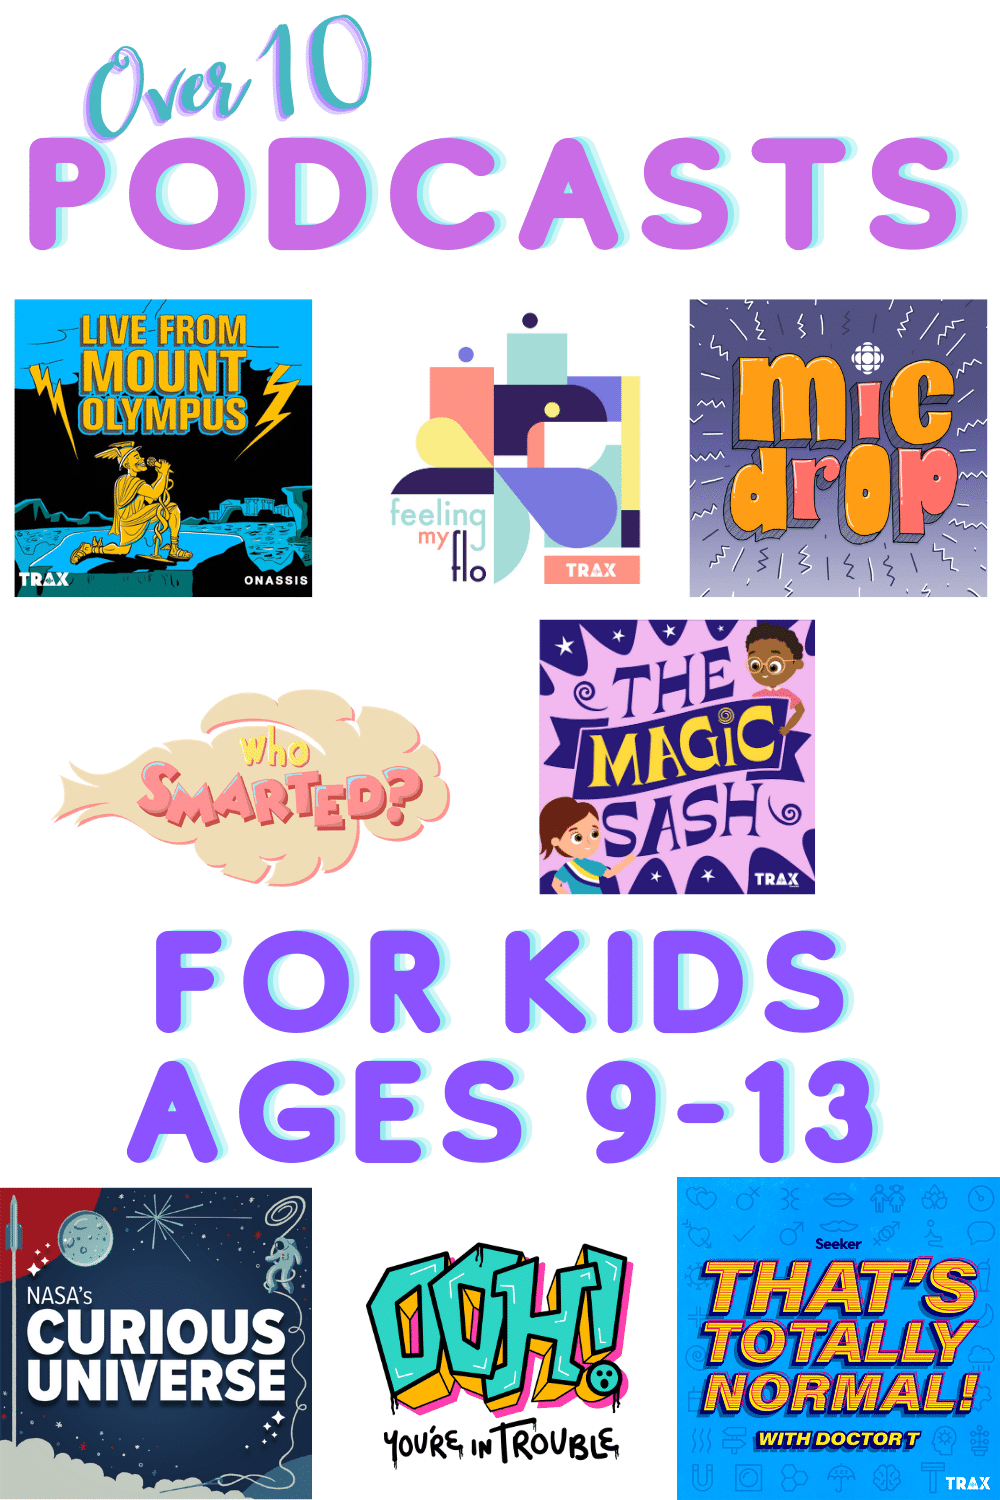 podcasts for kids ages 9-13